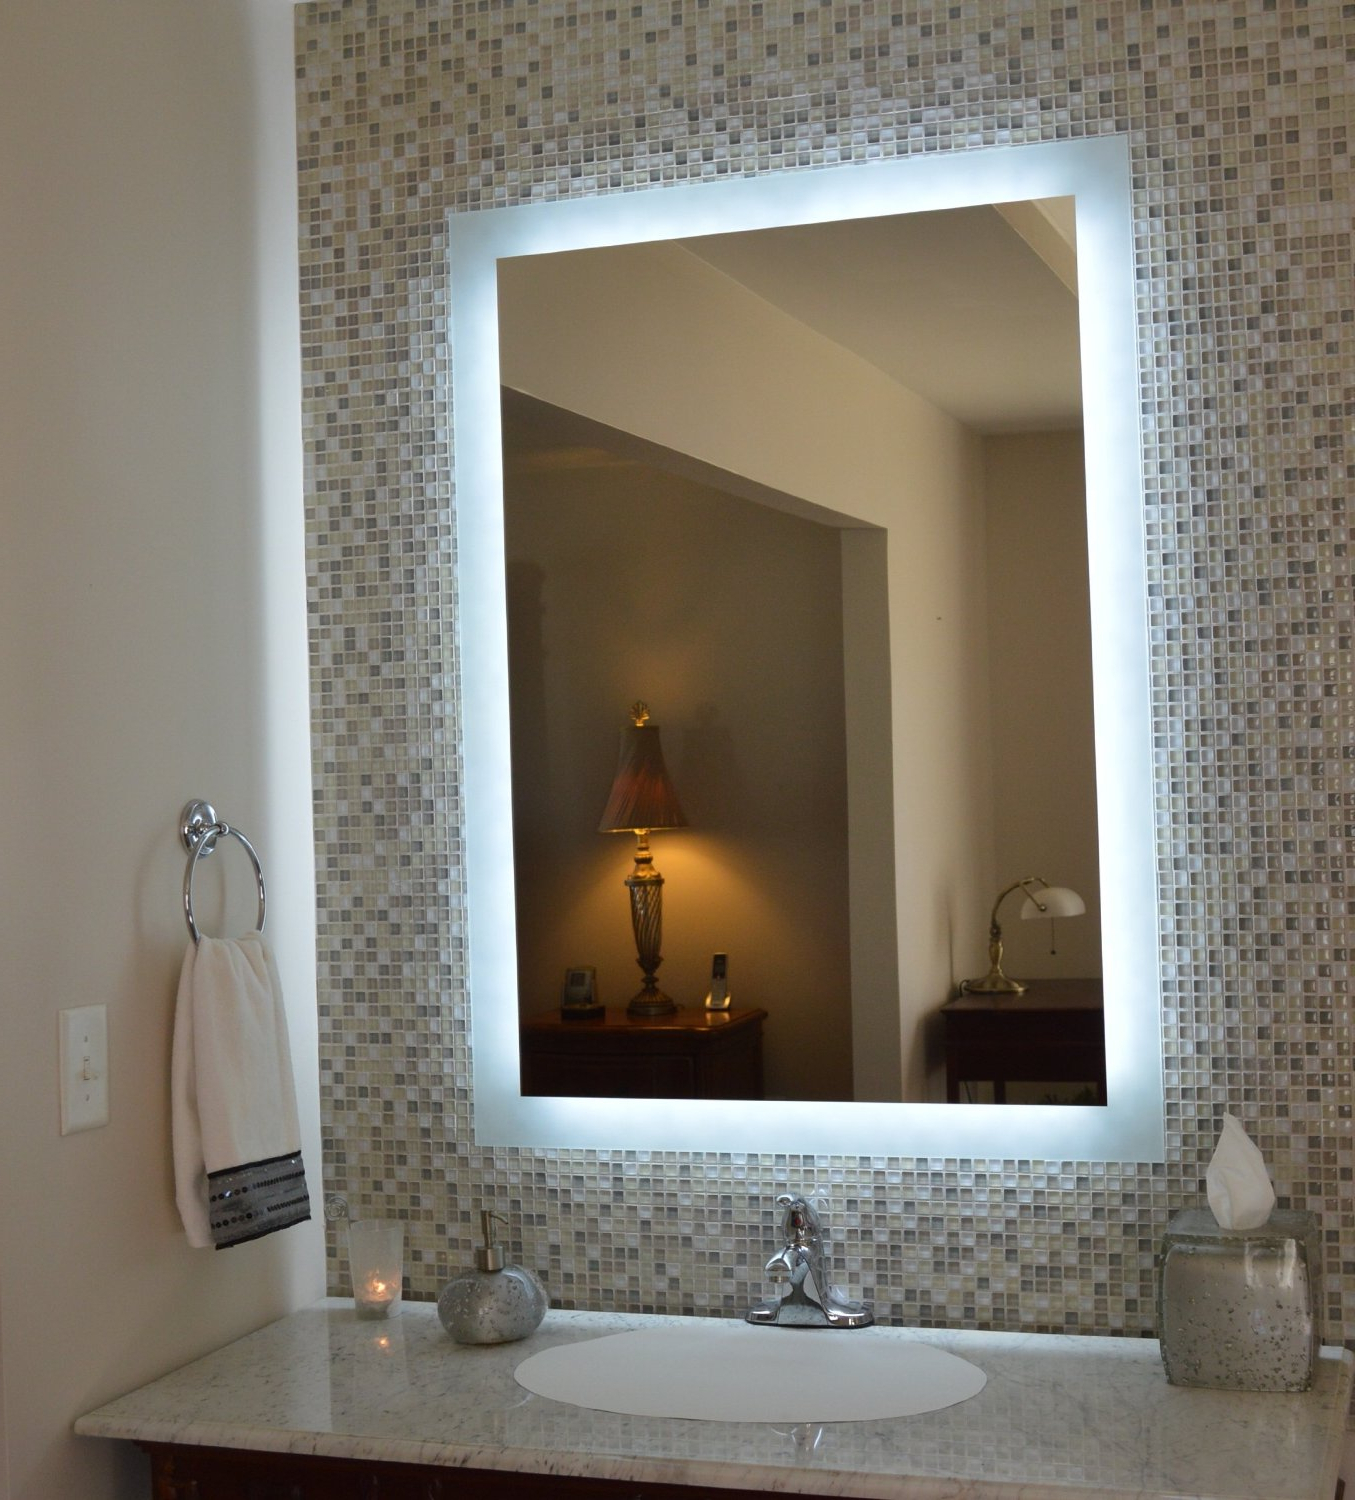 Pictures Frames Small Bathroom Fixtures Kits Cabinet Vani Bulbs Within 2020 Wall Mirrors With Light Bulbs (View 16 of 20)